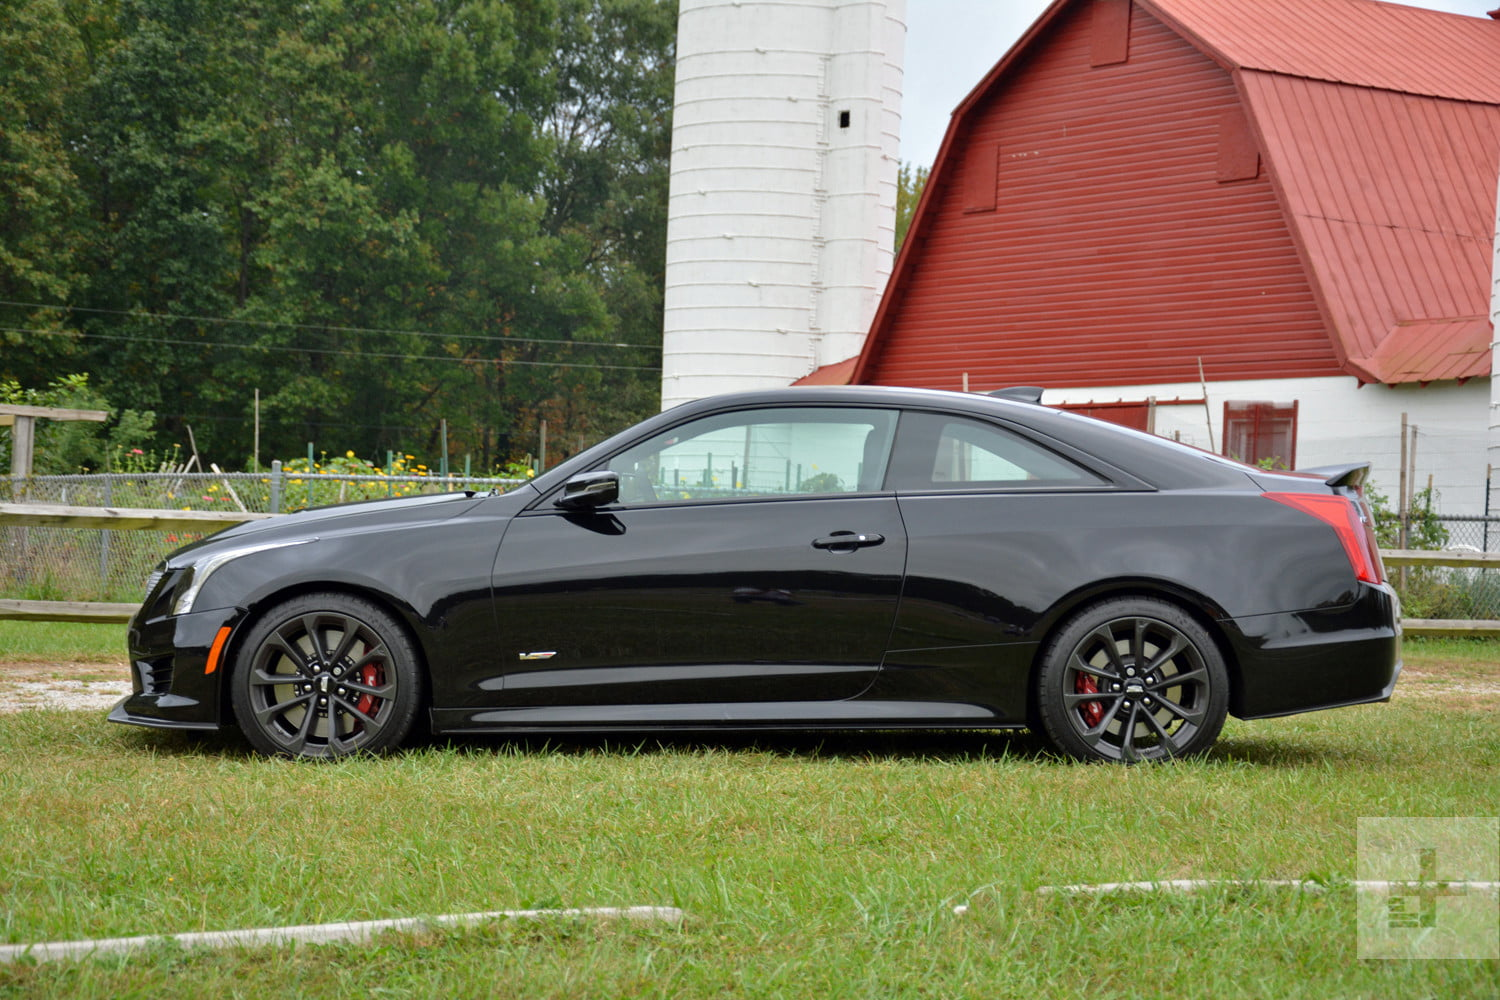 Cadillac Ats V Coupe >> 2017 Cadillac Ats V Coupe Review Performance Pictures And More